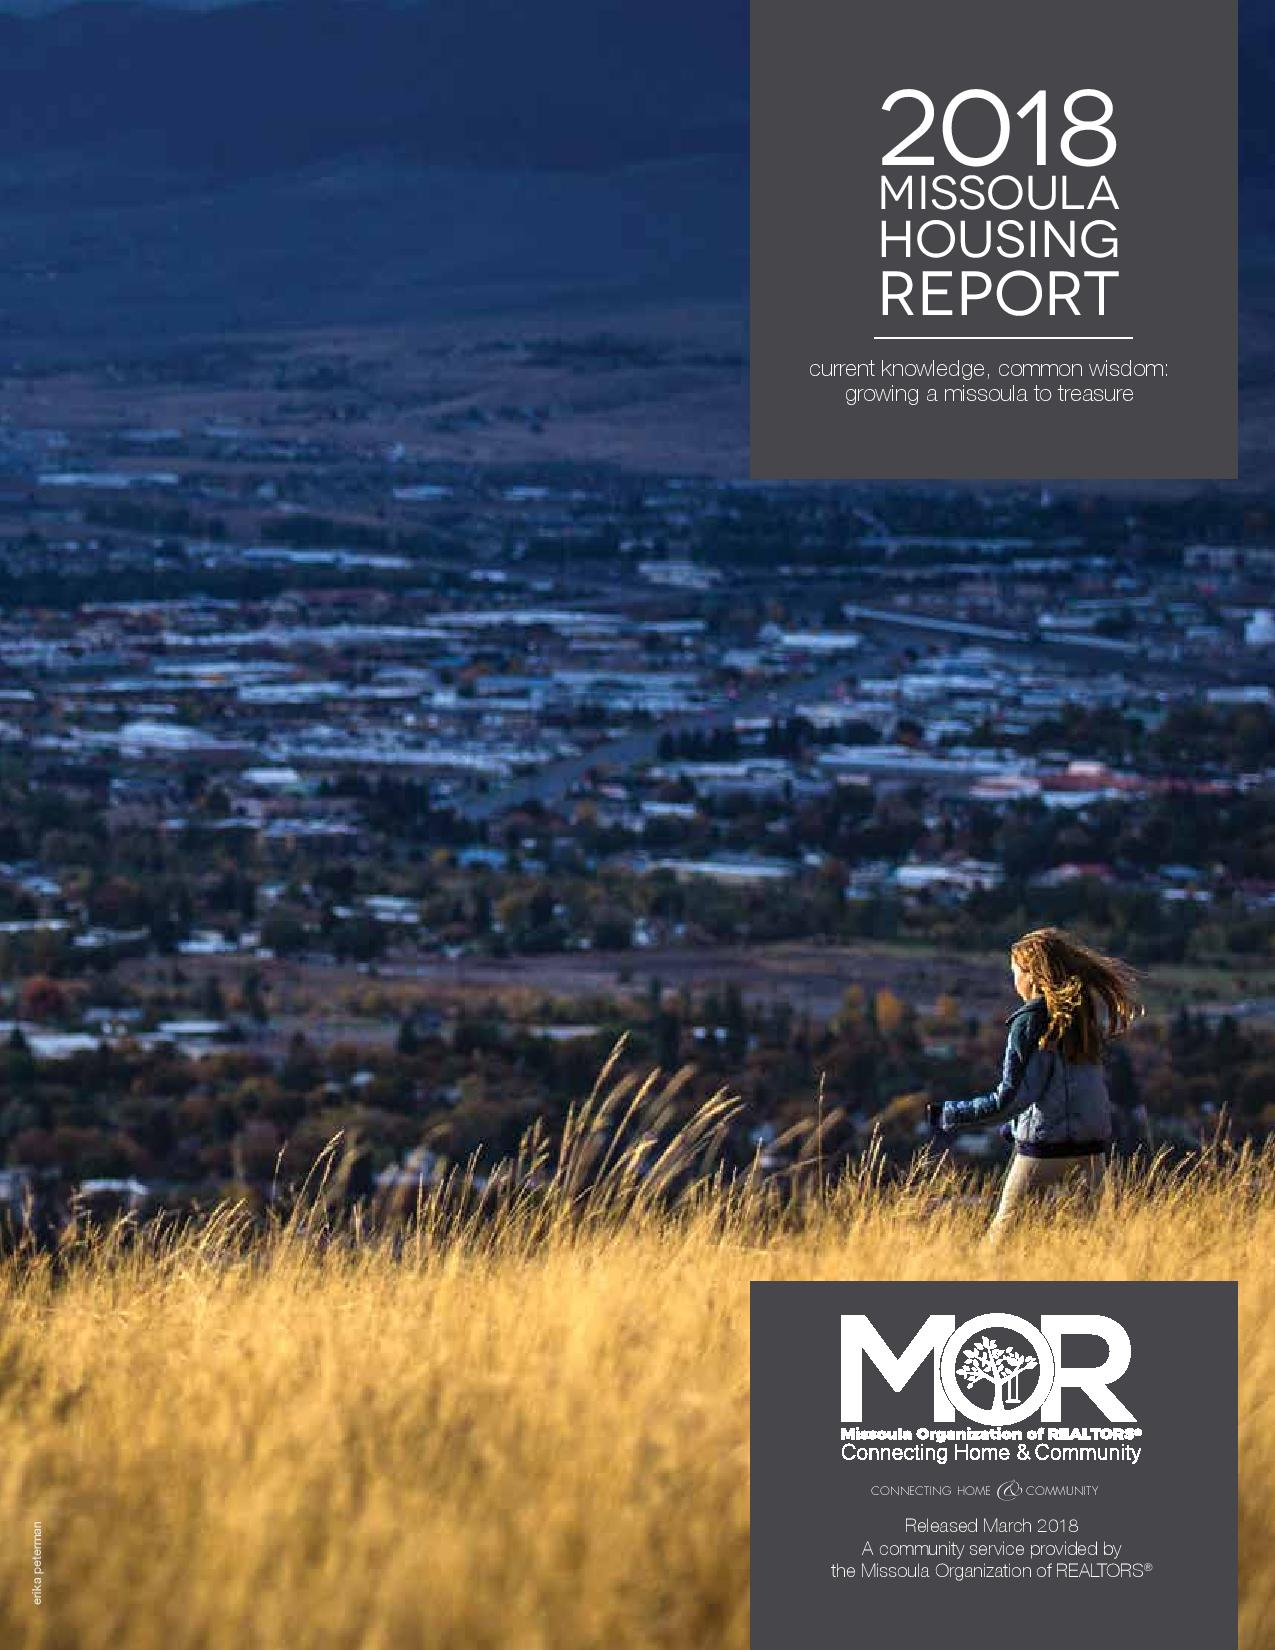 MOR_housing_report_2018-page-001.jpg